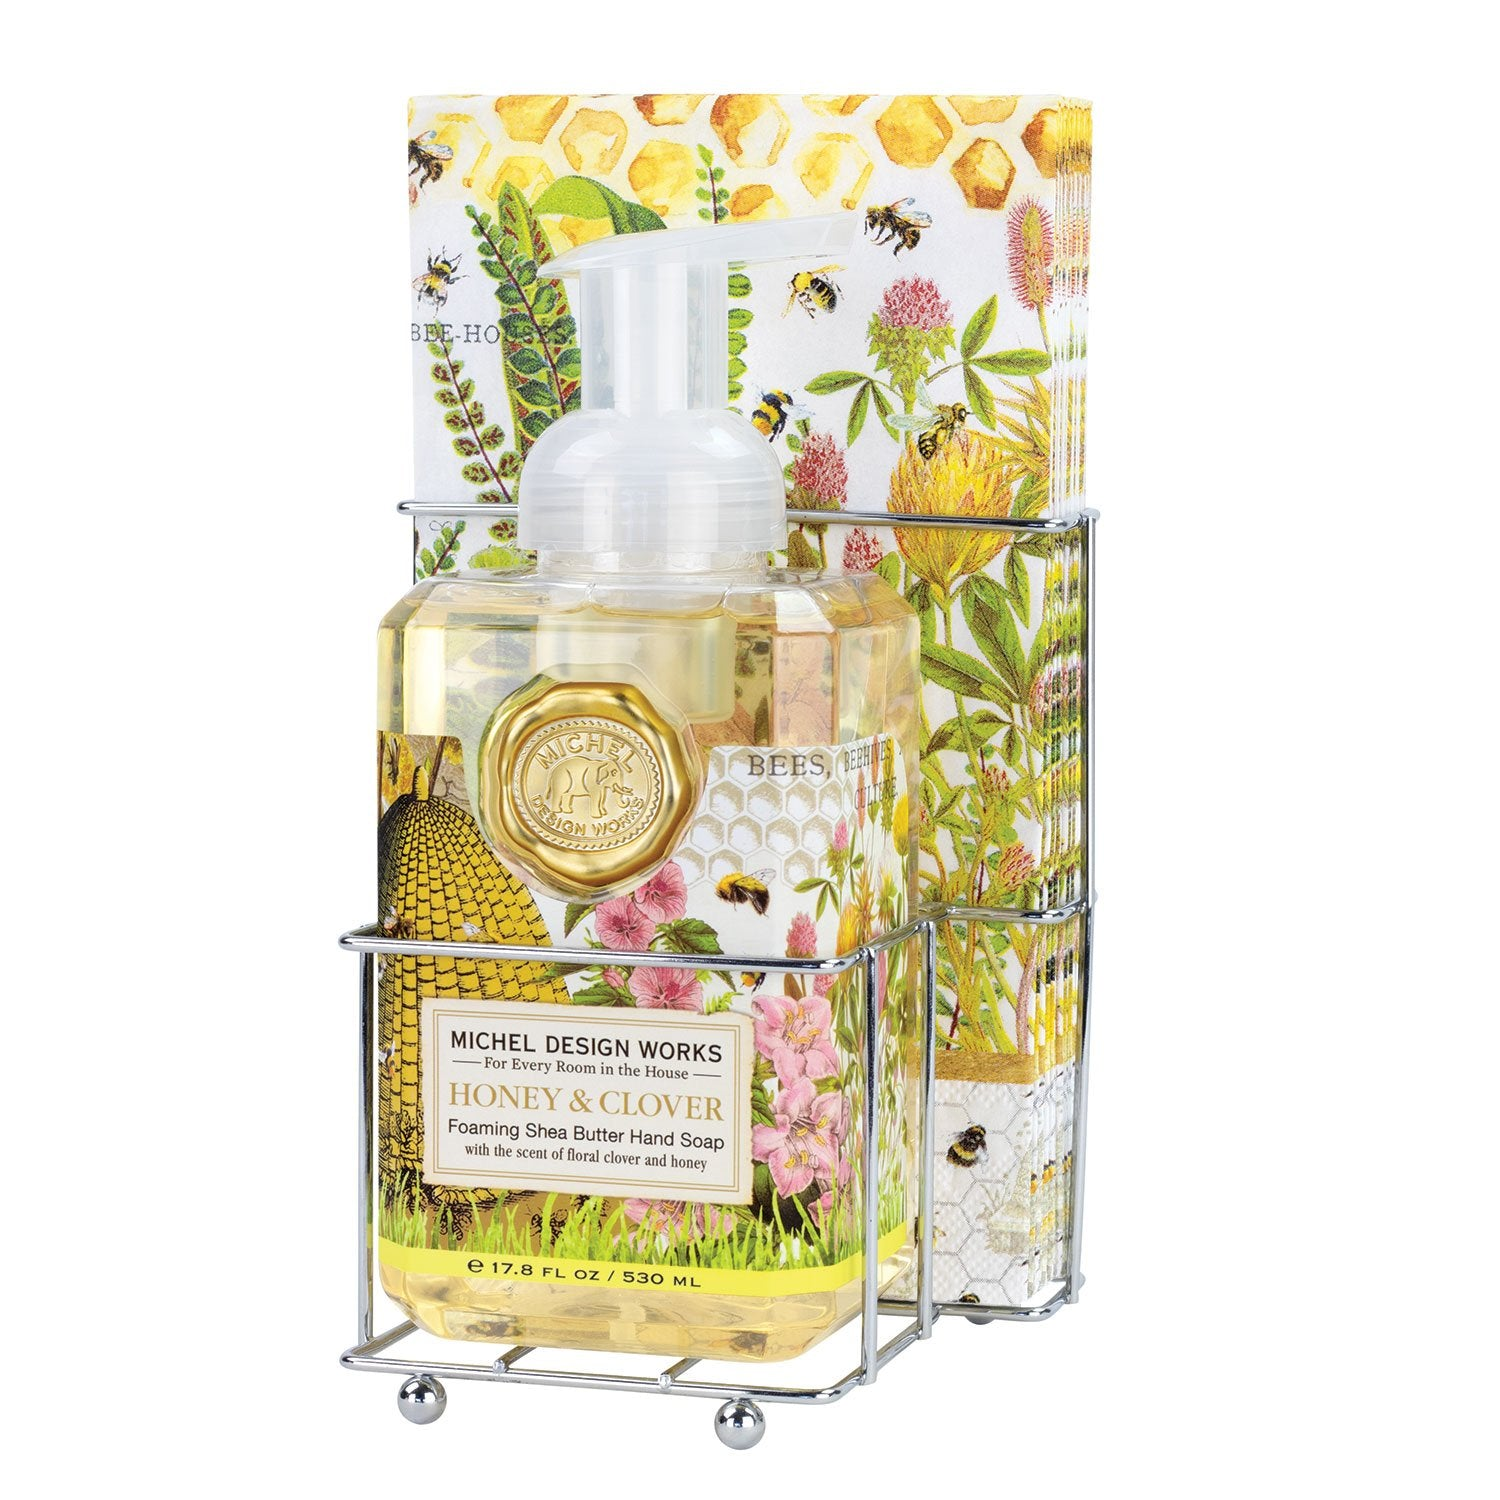 Honey & Clover Foaming Hand Soap Napkin Set